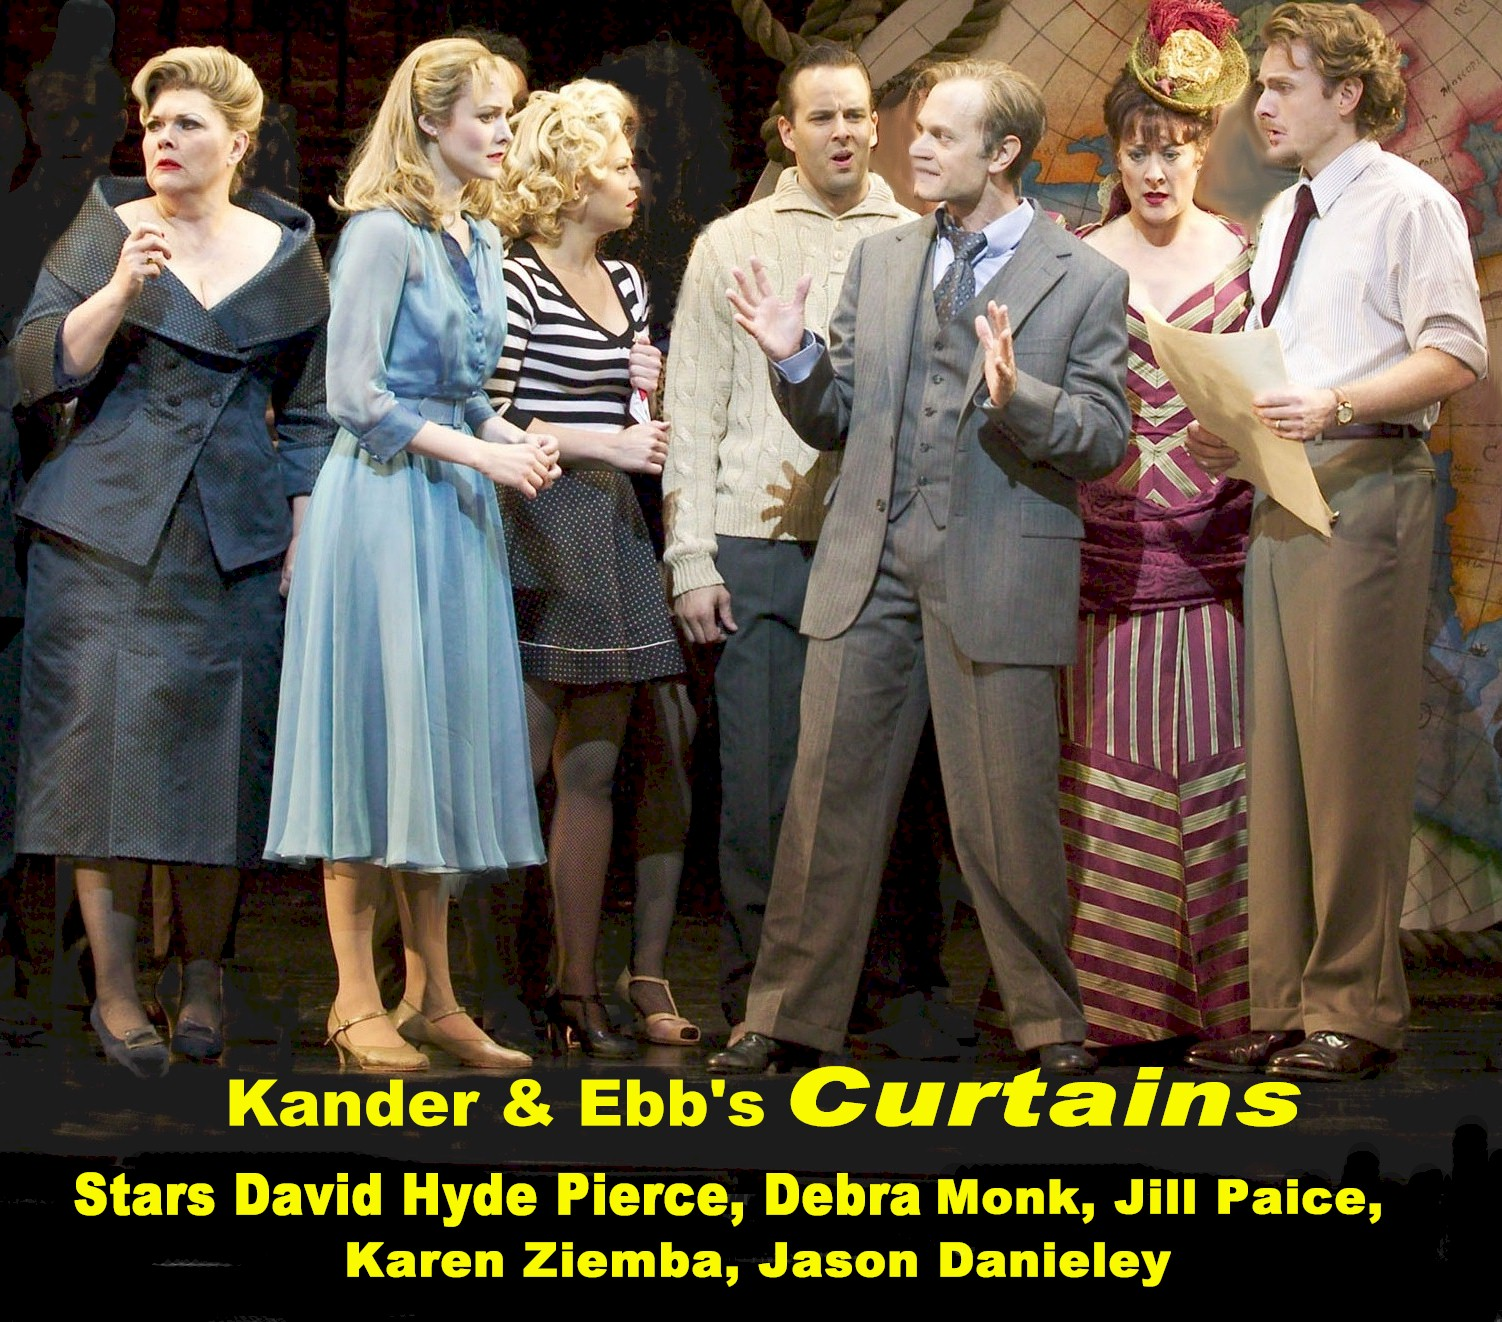 But The Show Must Go One And As It Does, Cioffi Finds Himself Caught In A  Web Of Bedlam, Deceit, Massive Theatrical Egos, A Budding Love Affair And  More ...